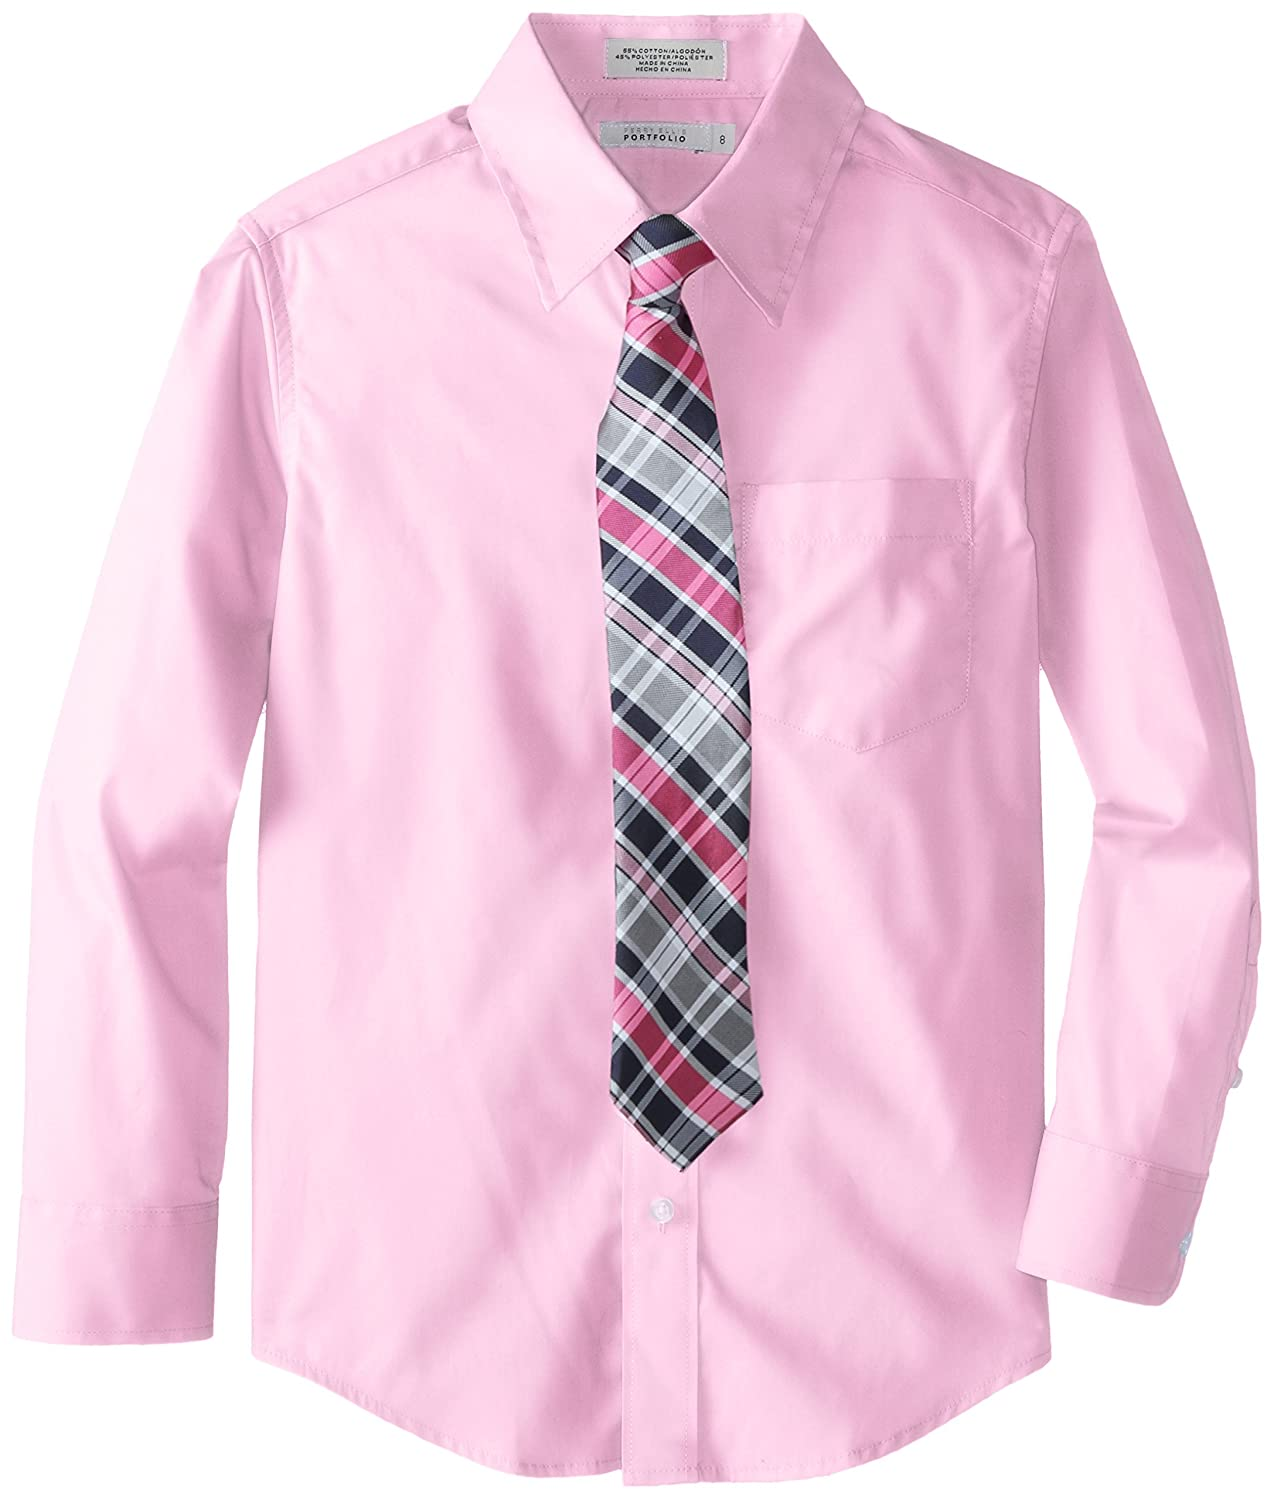 Perry Ellis Big Boys' Solid Packaged Shirt with Tie